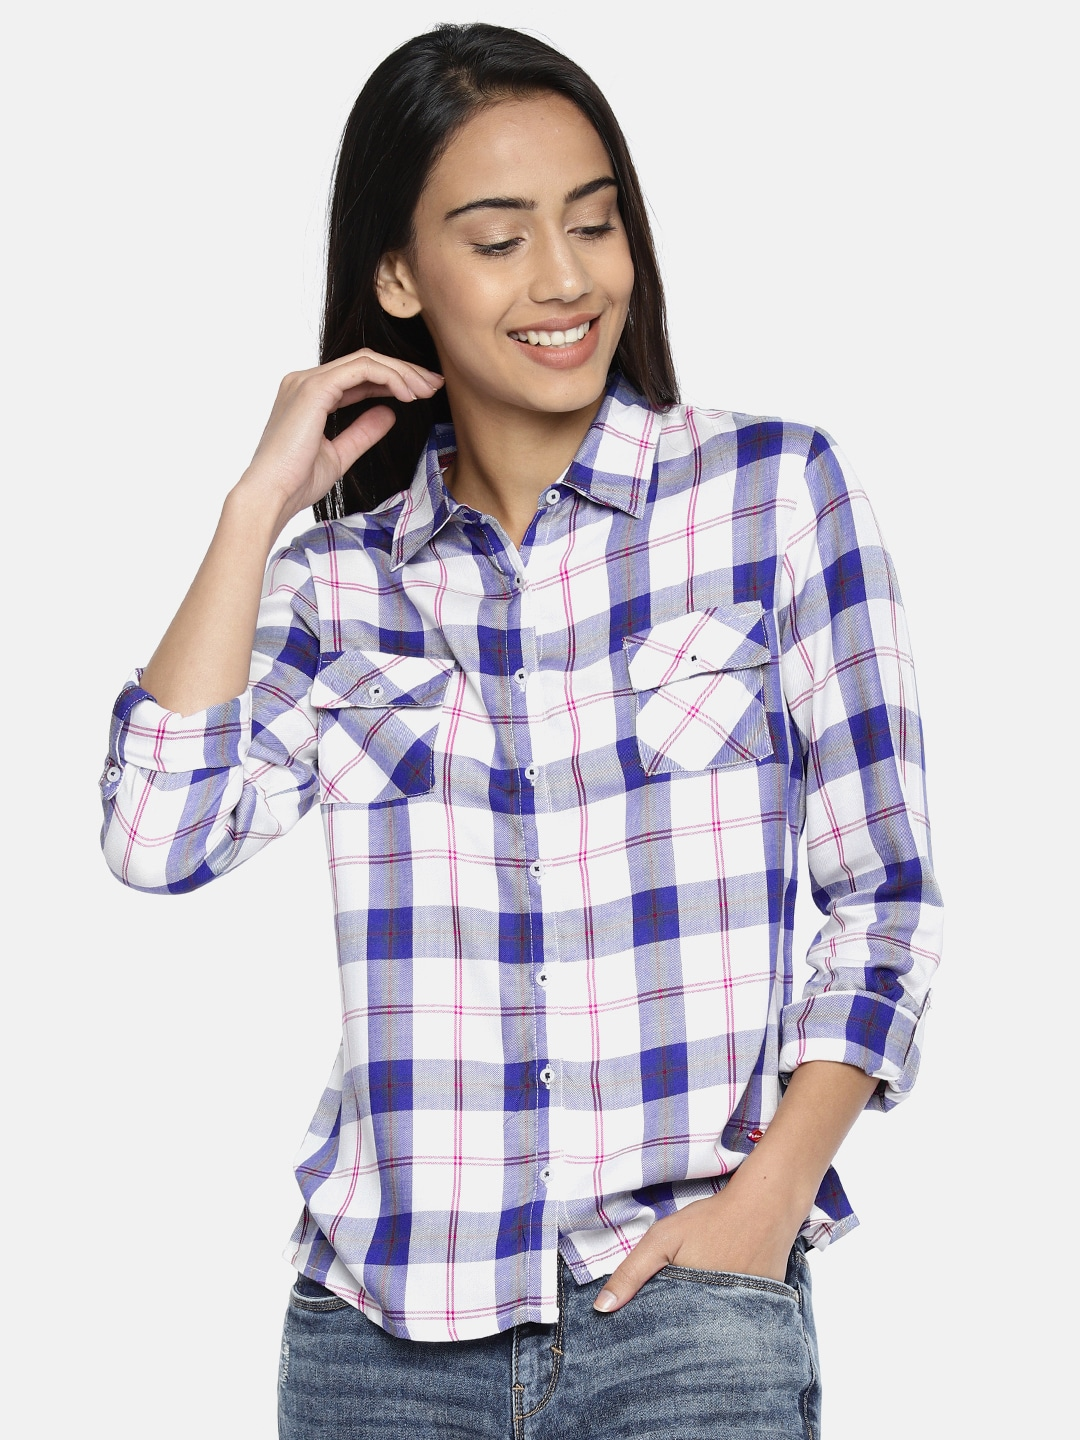 dd0c8505583 Women Shirts - Buy Shirts for Women Online in India